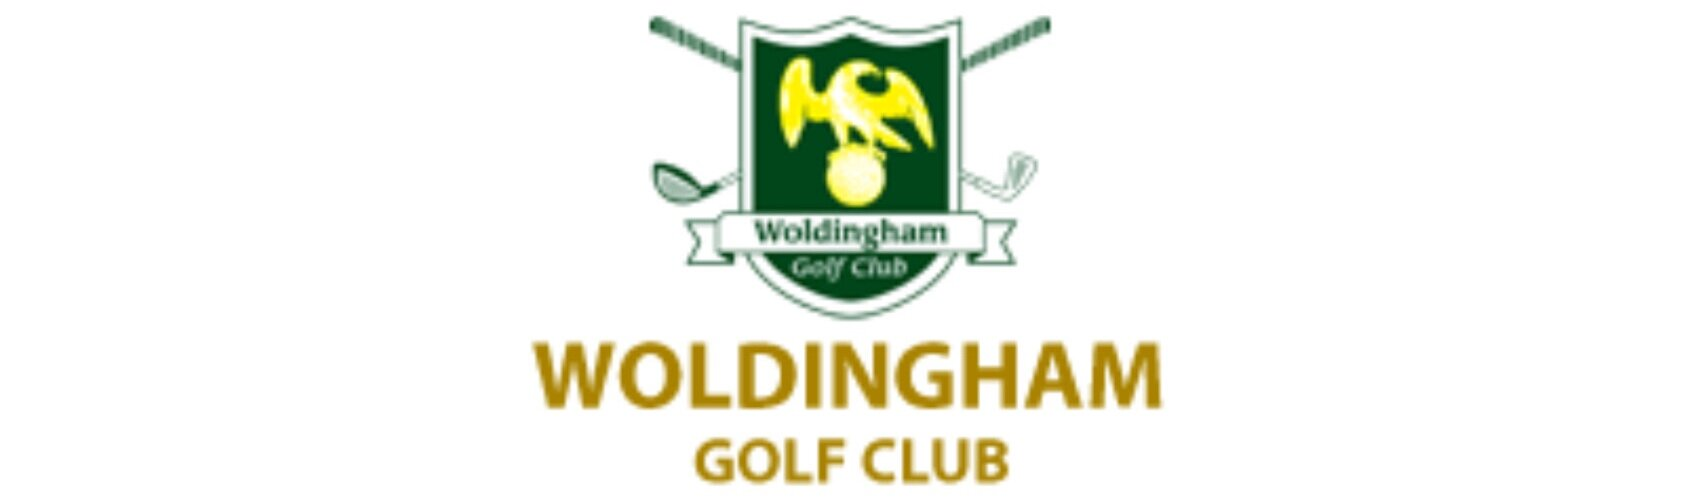 Woldingham+Golf+Club+Recommended+Supplier